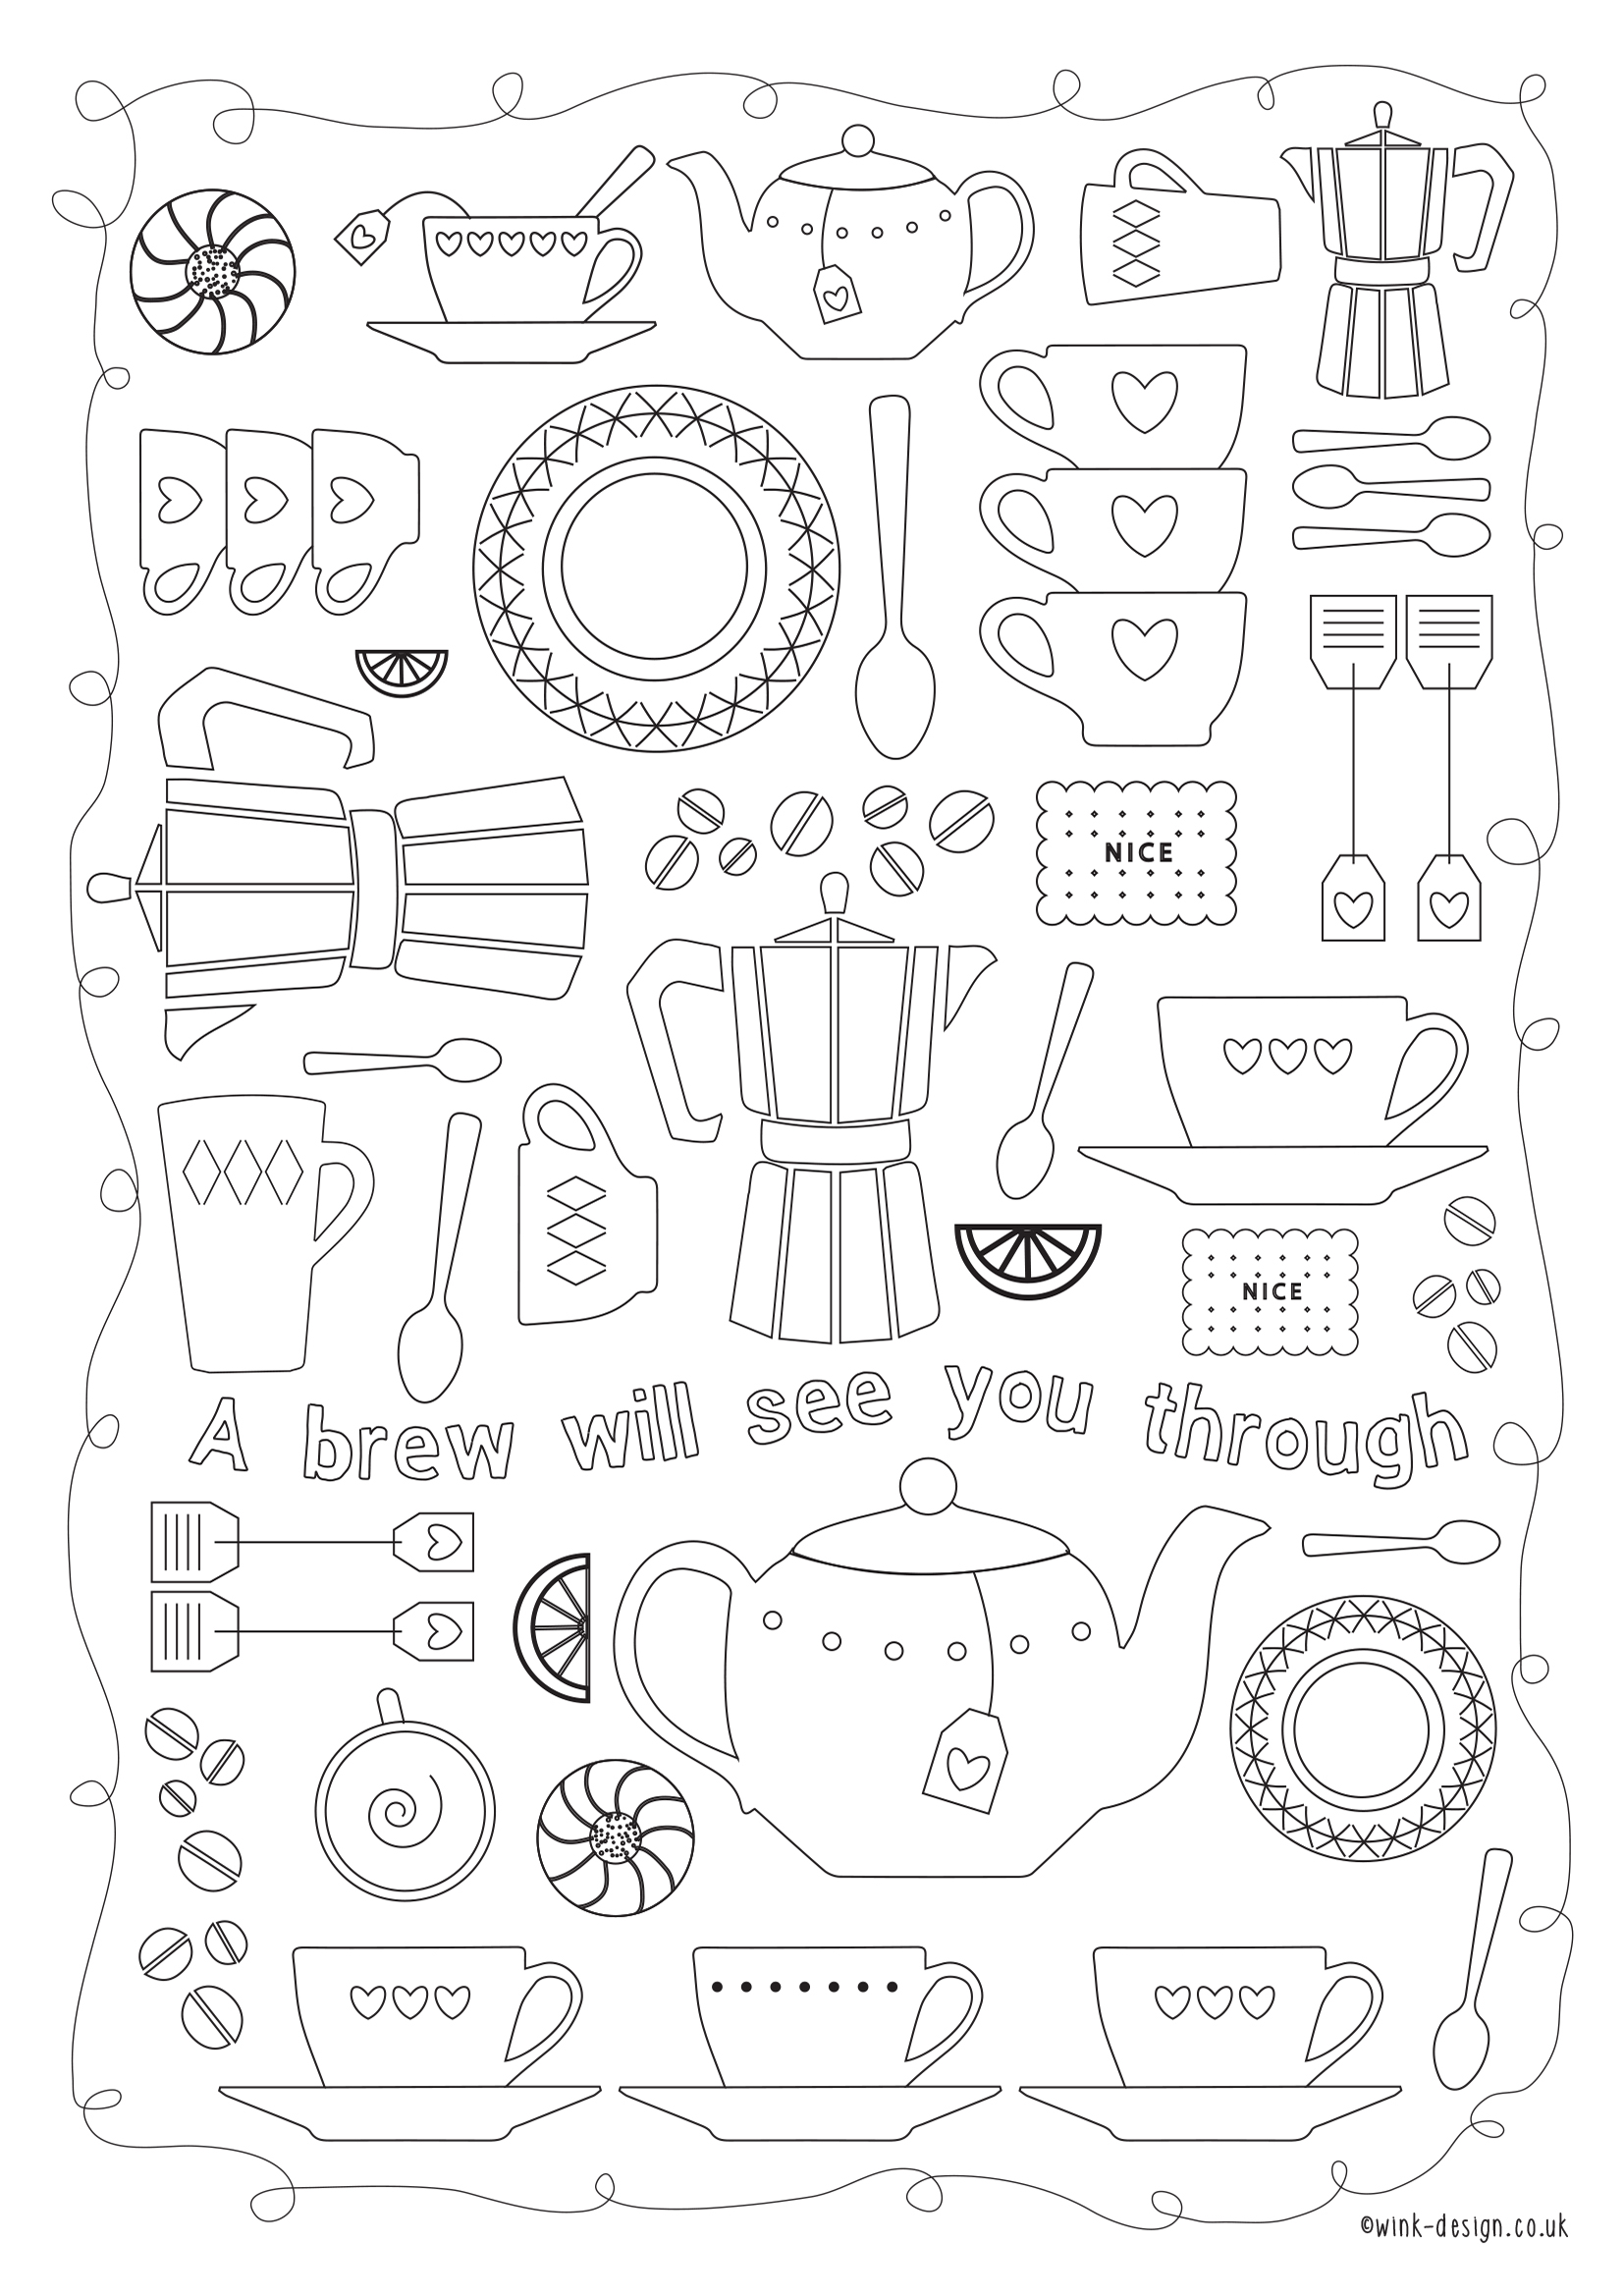 Free printable adult colouring pages for the New Year